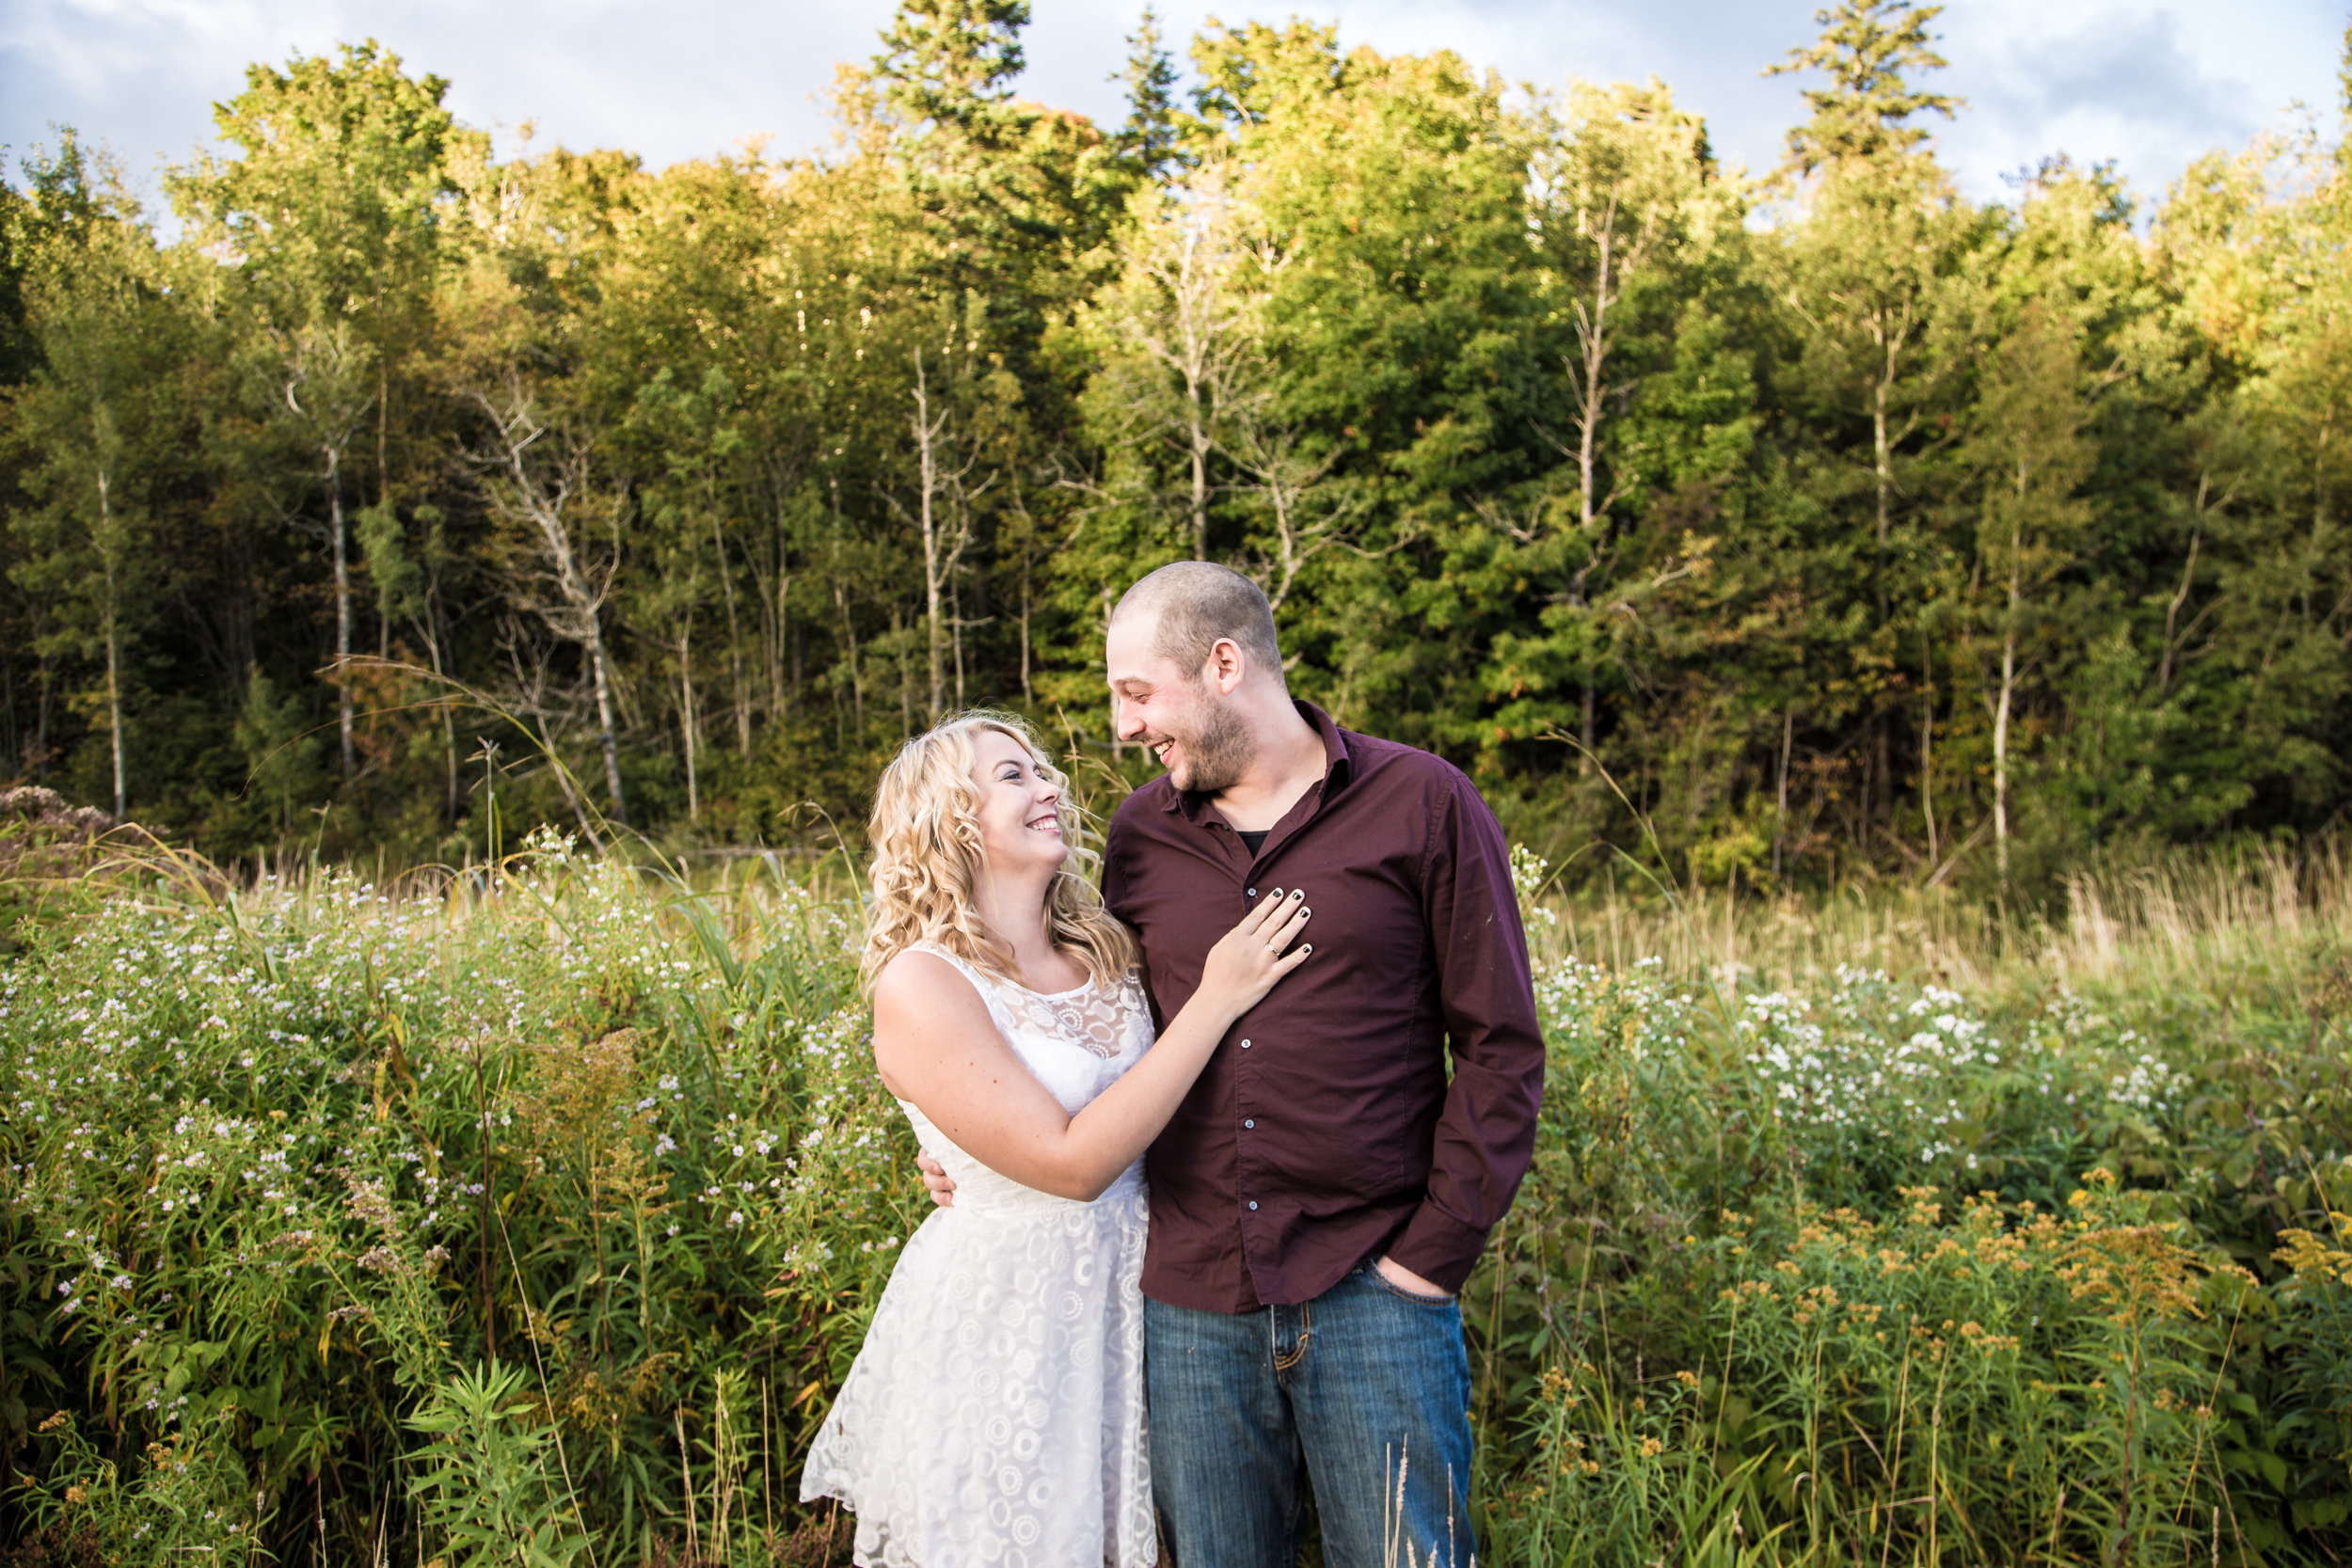 nataliejustin_engagement_sep2014-3.jpg